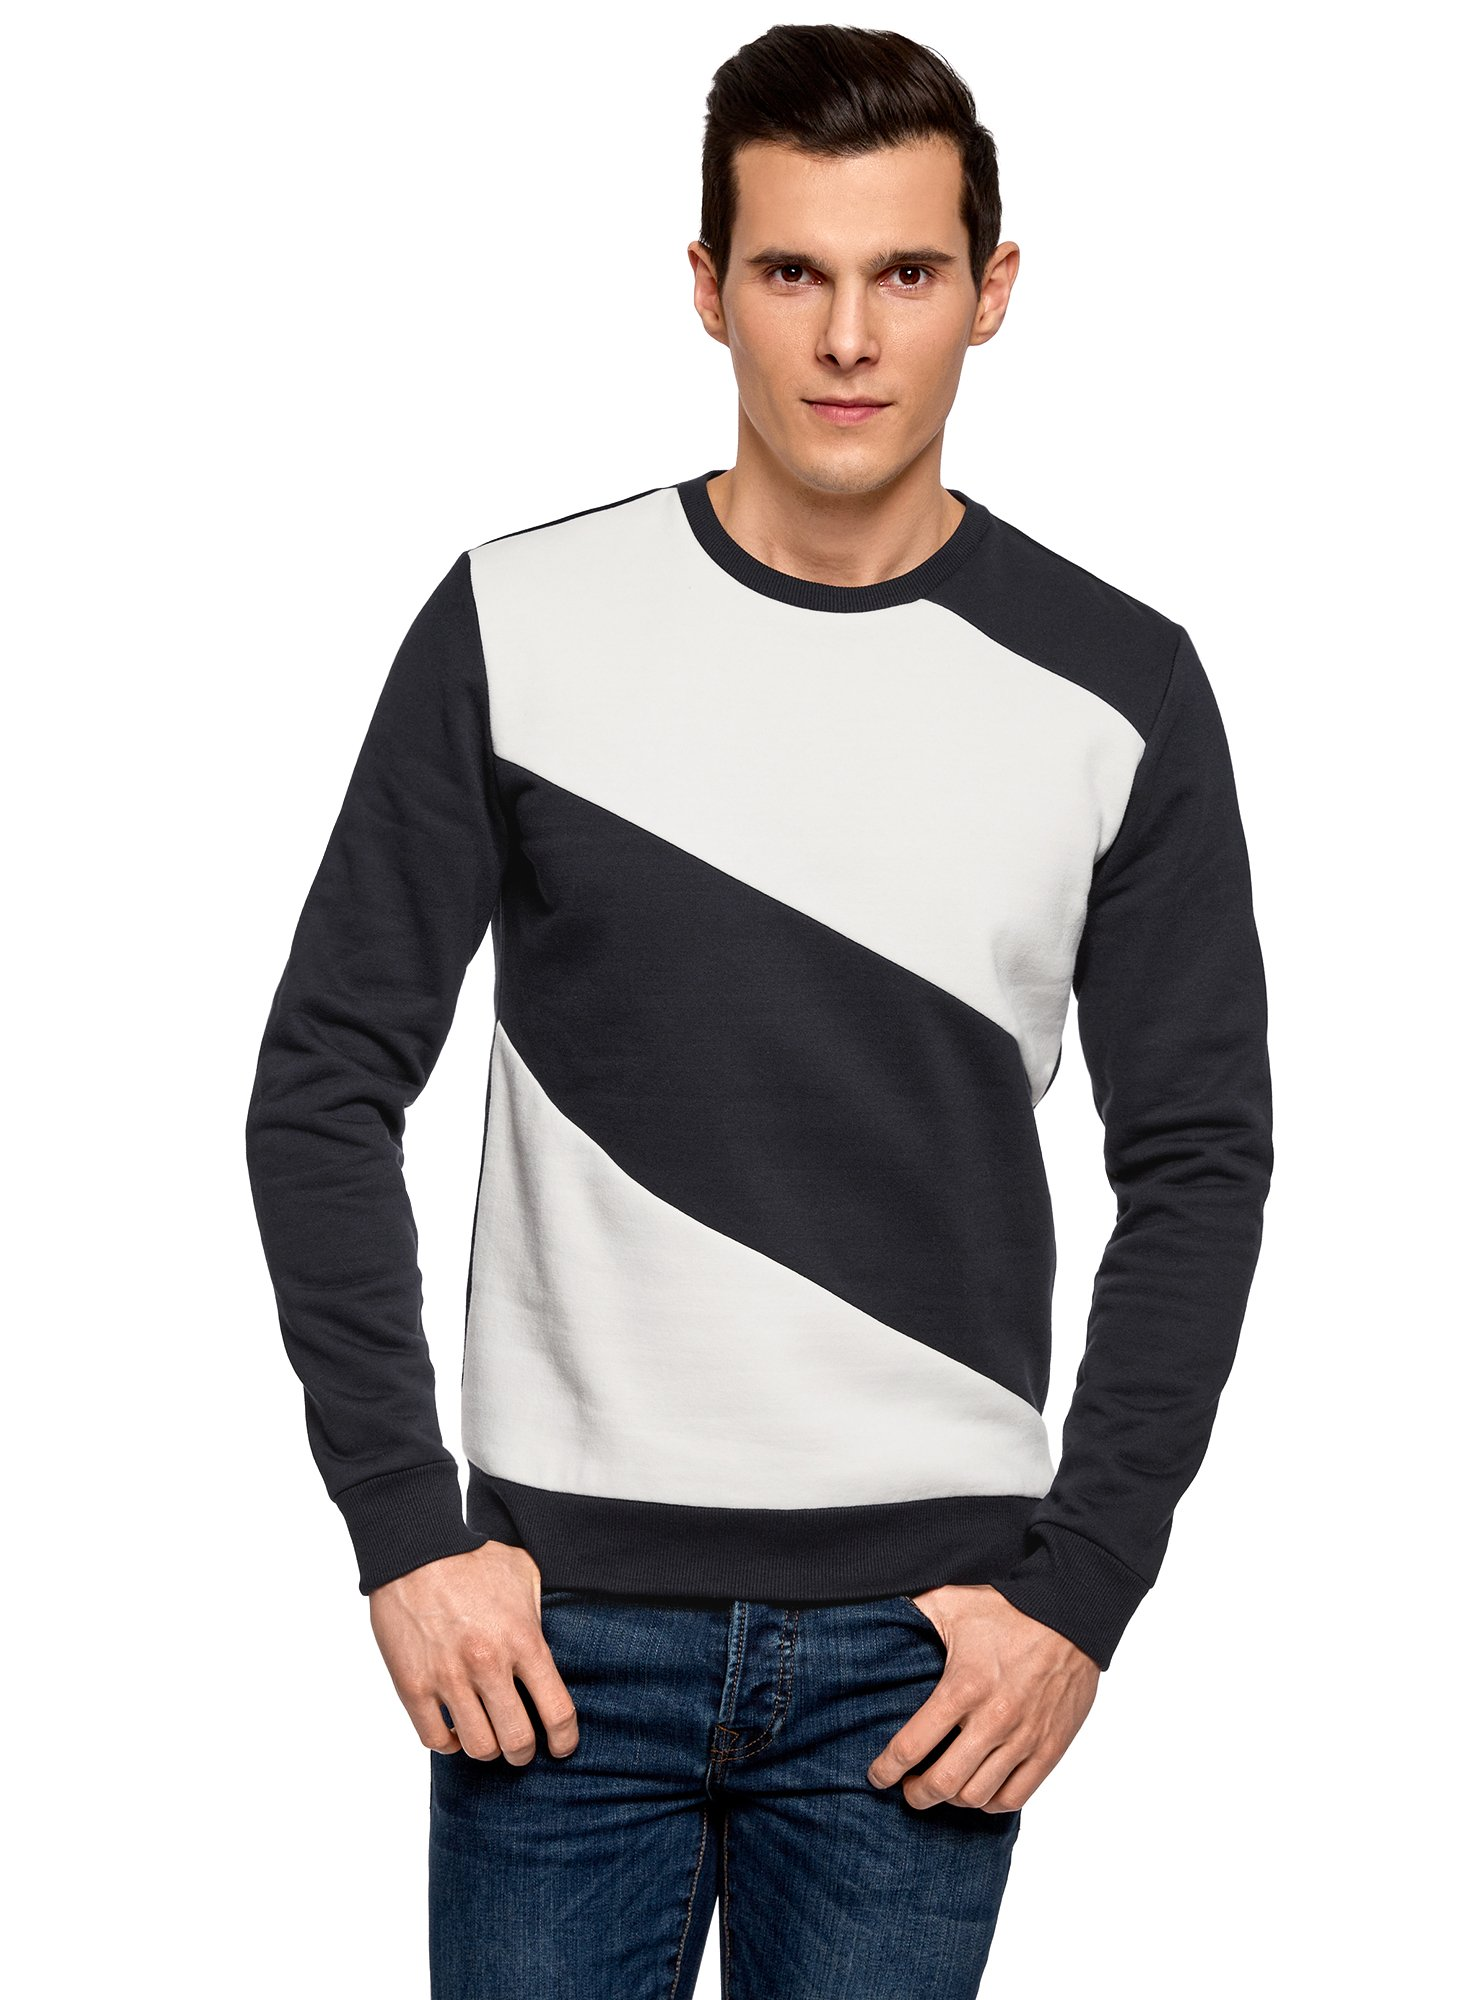 oodji Ultra Men's Round Neck Sweatshirt with Contrast Details, Blue, US 46/EU 56/XL